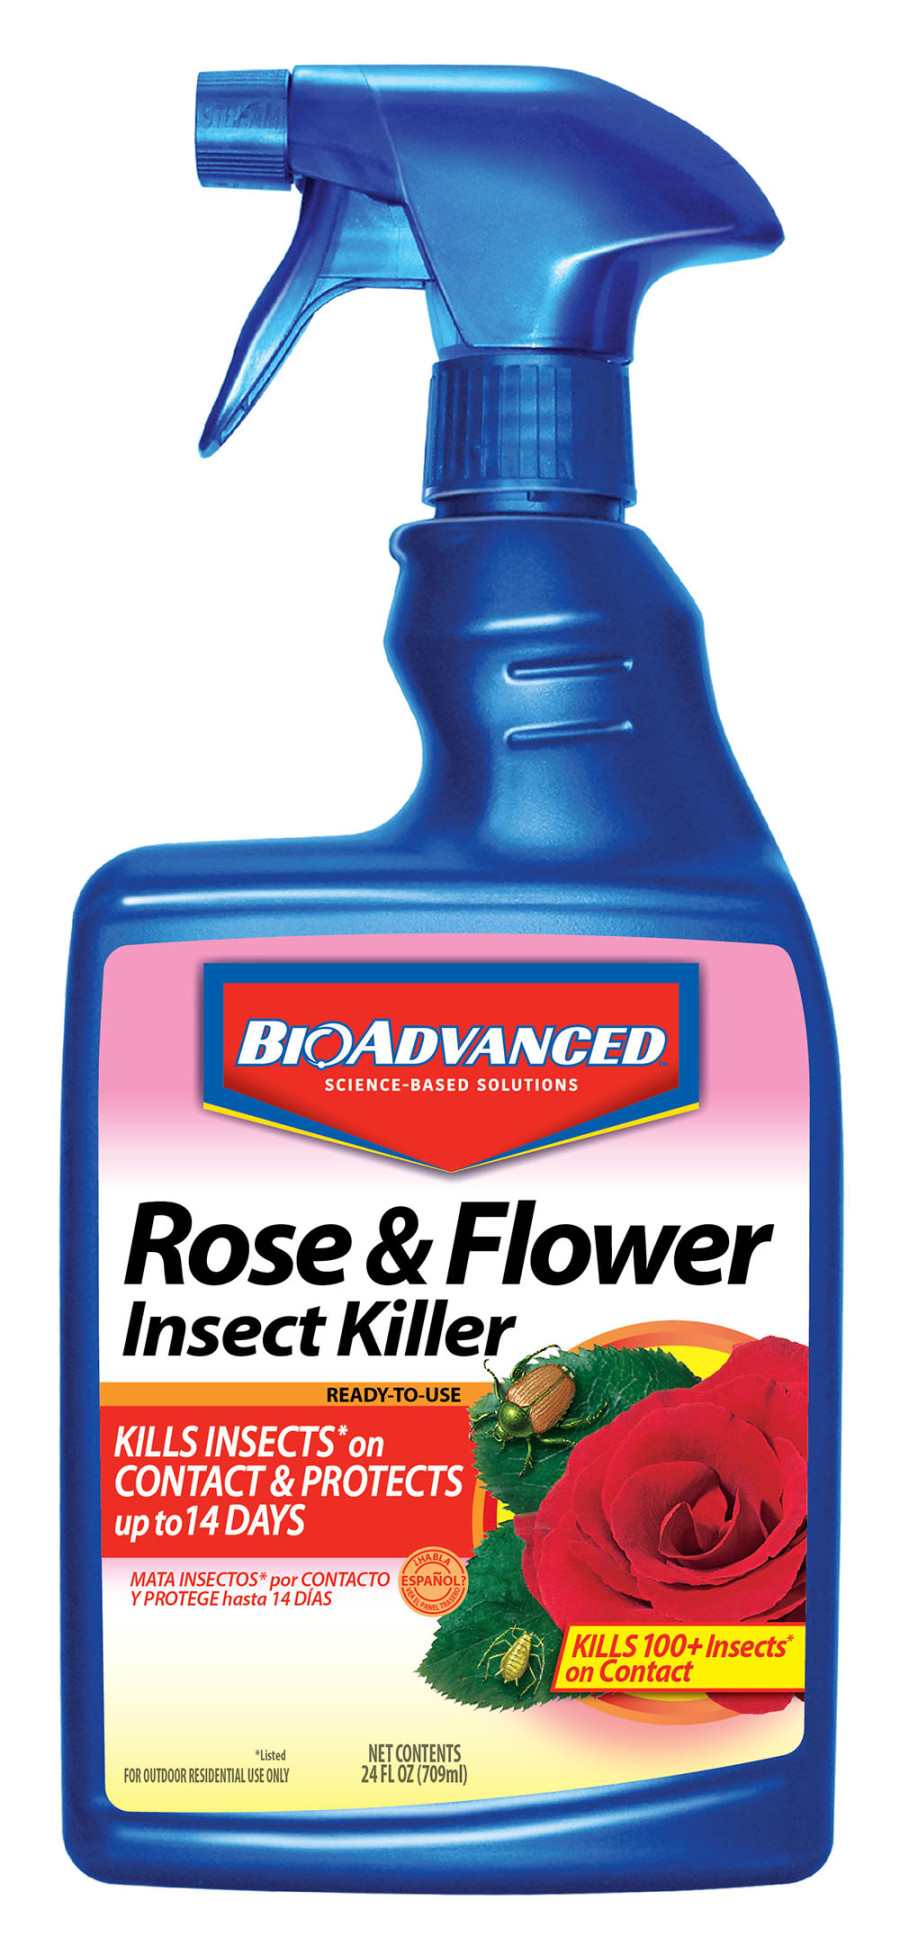 BioAdvanced Rose & Flower Insect Killer Ready To Use 12ea/24 oz